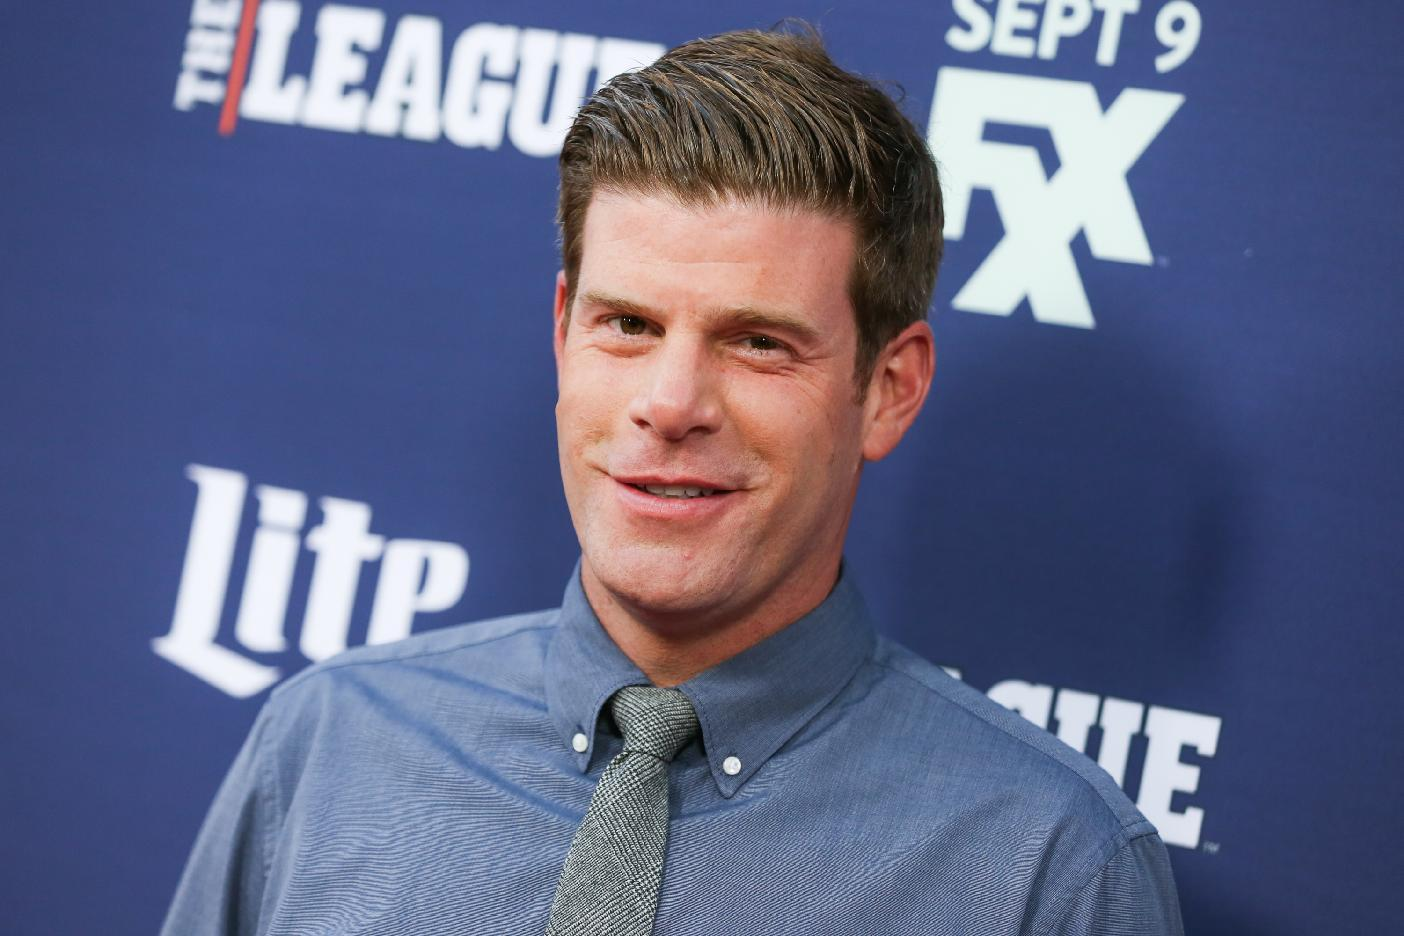 Rannazzisi apologizes on Howard Stern show for Sept. 11 lie